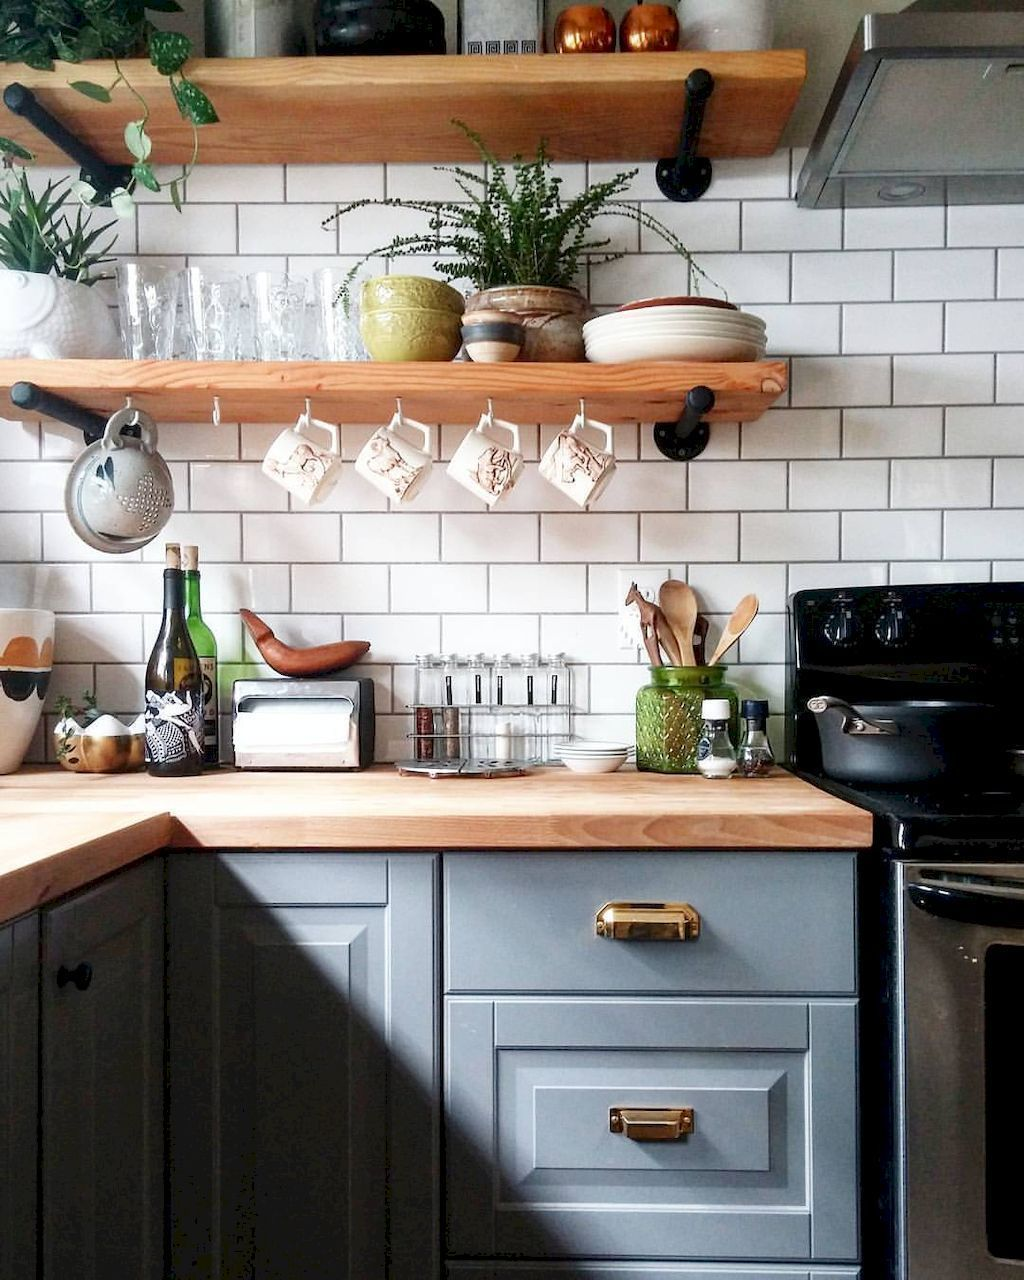 Floating Shelves Kitchen Cabinets: Pin By Sarah Soderberg On Kitchen